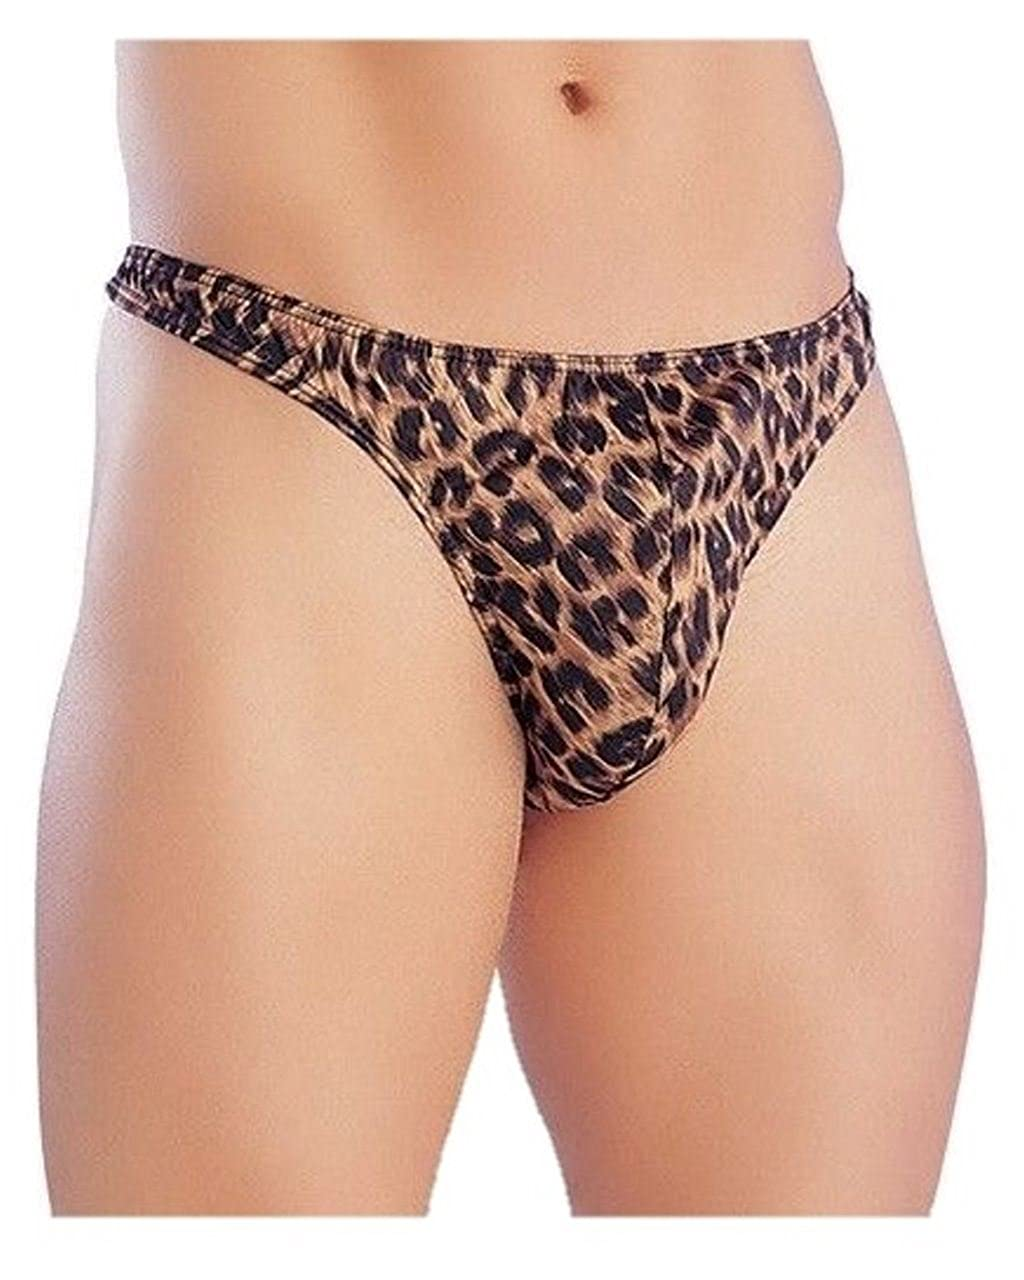 Mens Pouch Briefs Thong Novelty Fun Gift stag Night one Size Leopard